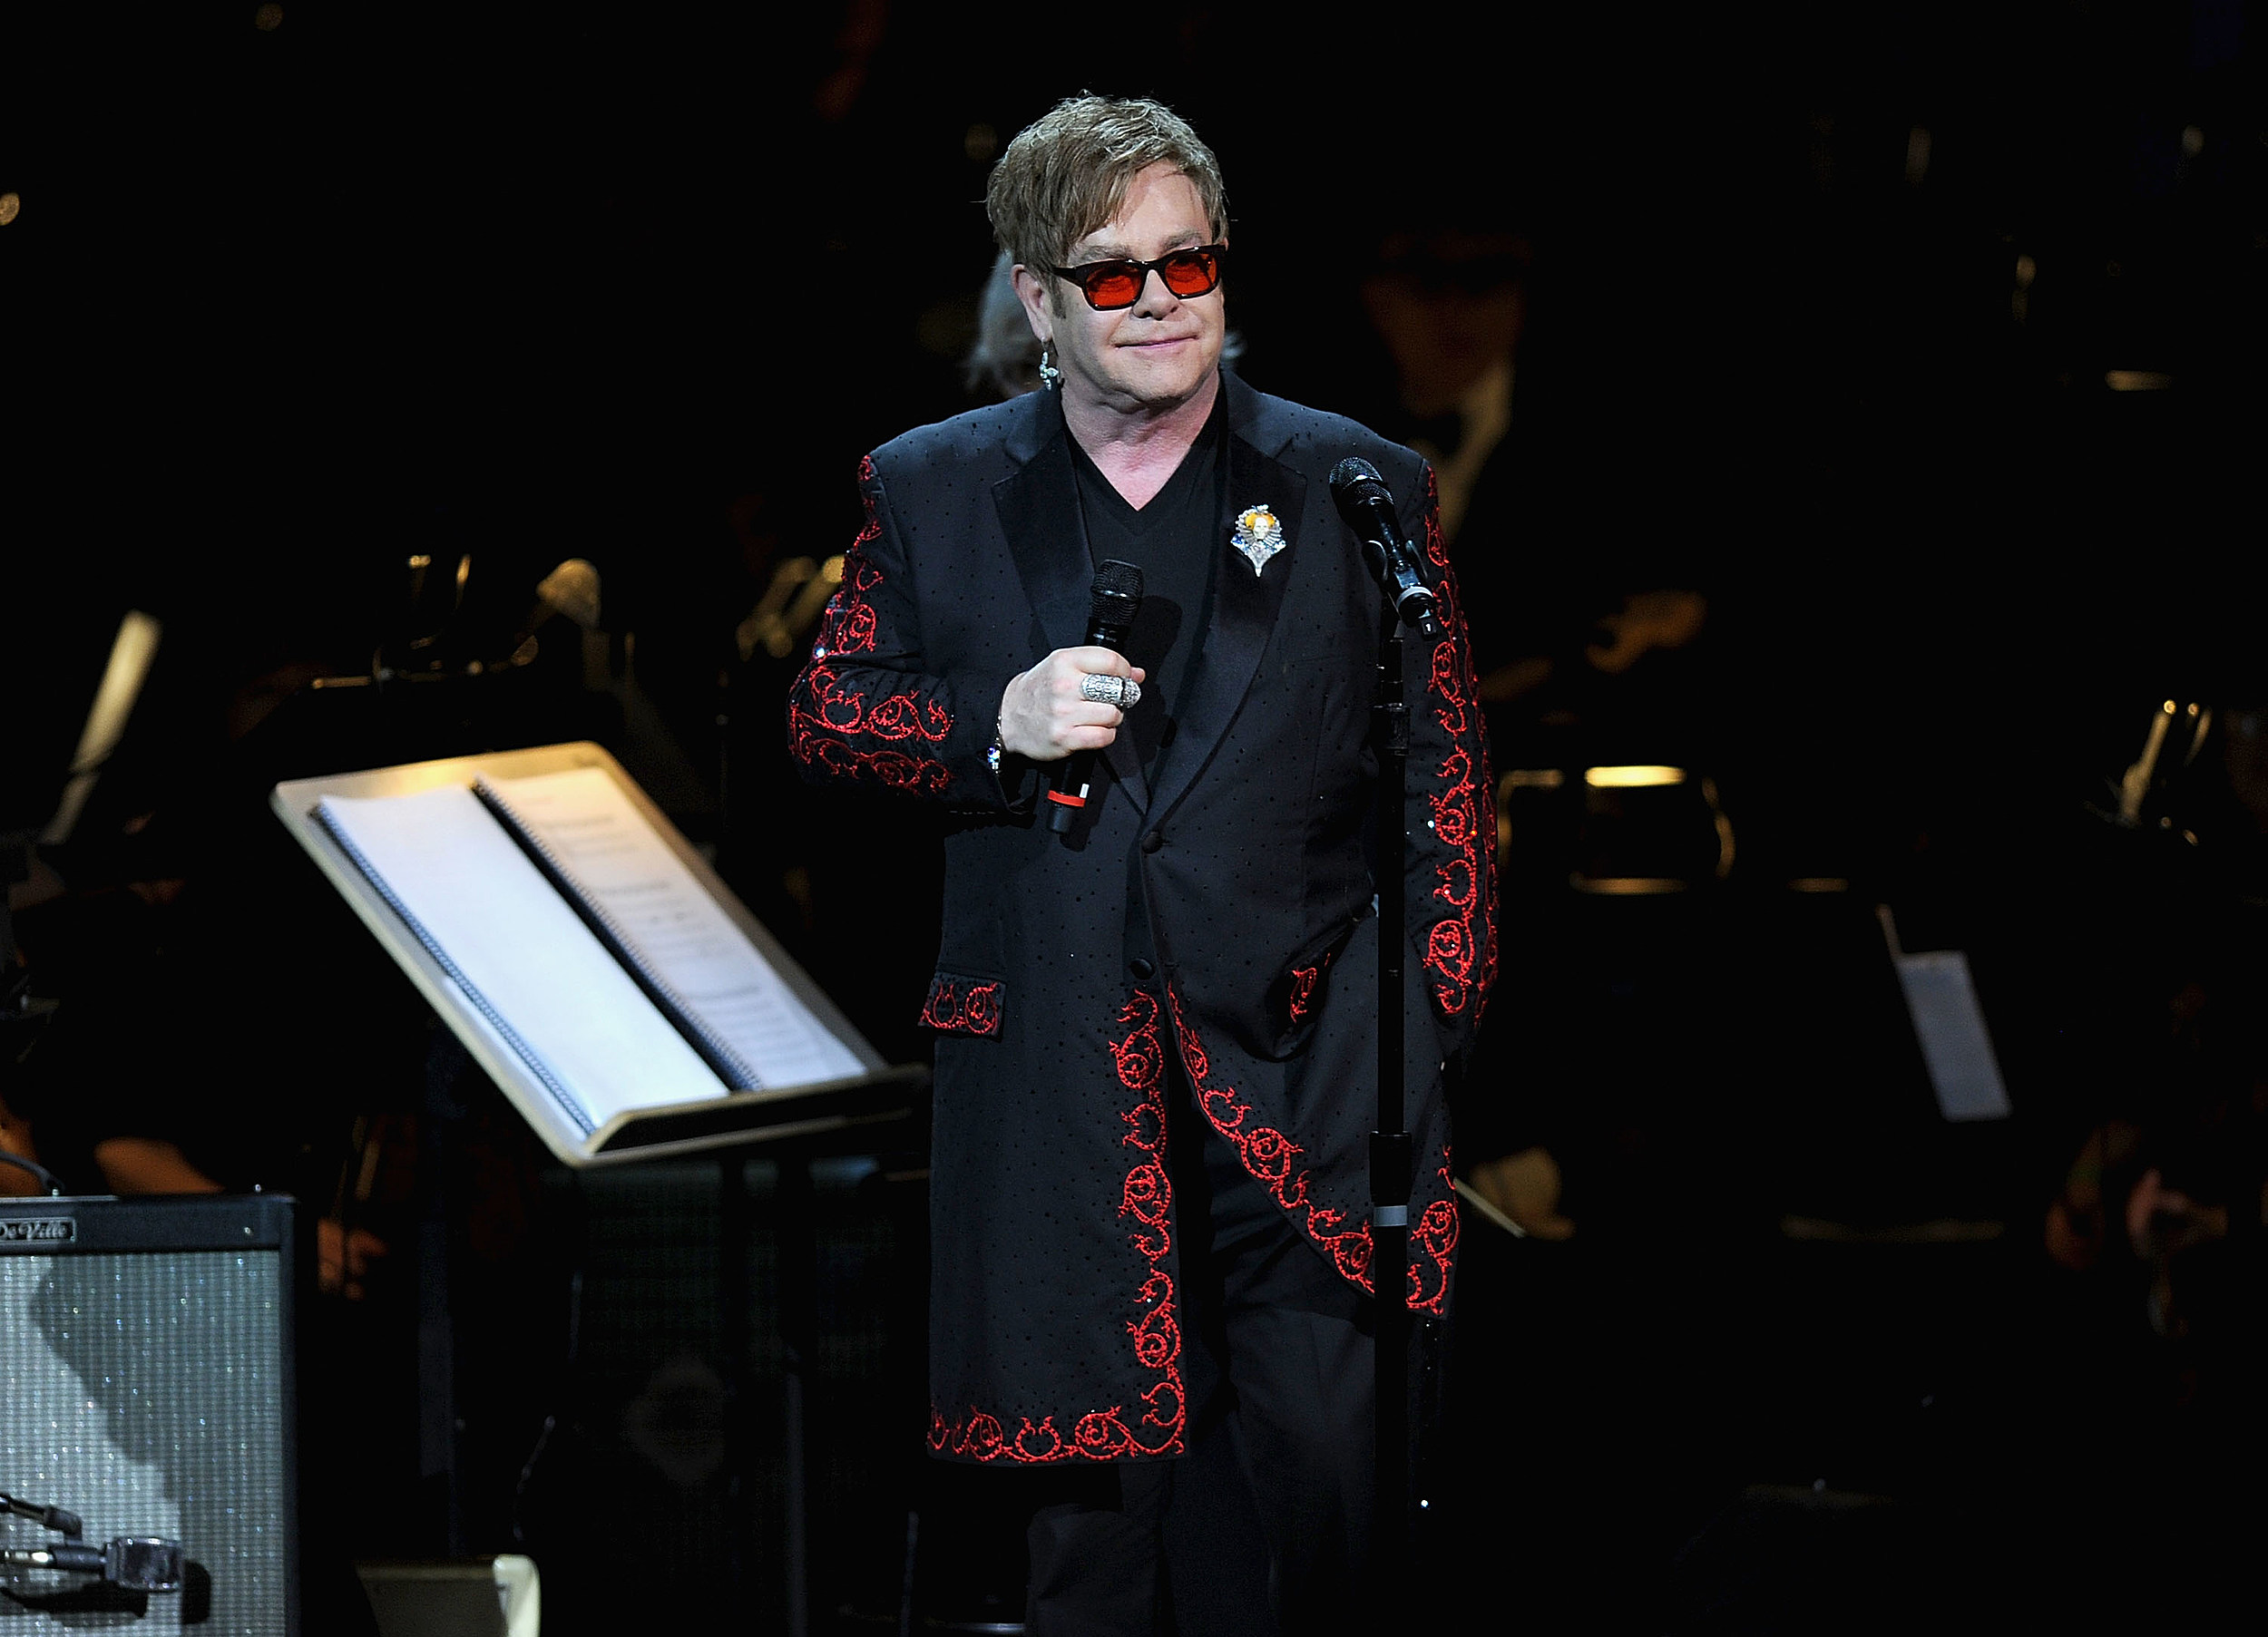 Rock Report Elton John Including Live John Lennon Footage In Vegas Show